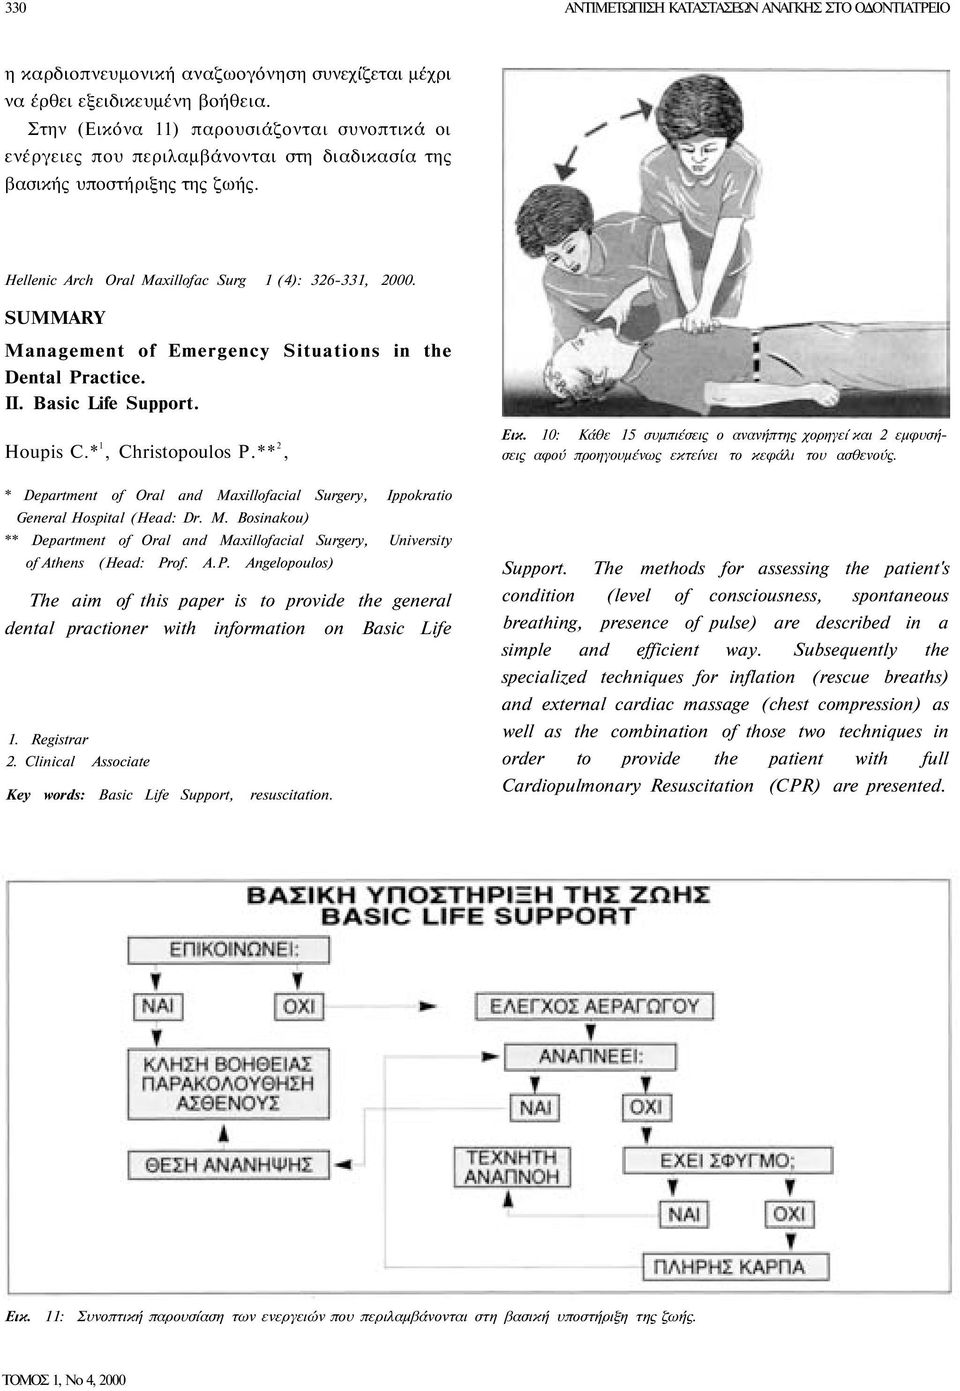 SUMMARY Management of Emergency Situations in the Dental Practice. II. Basic Life Support. Houpis C.* 1, Christopoulos P.